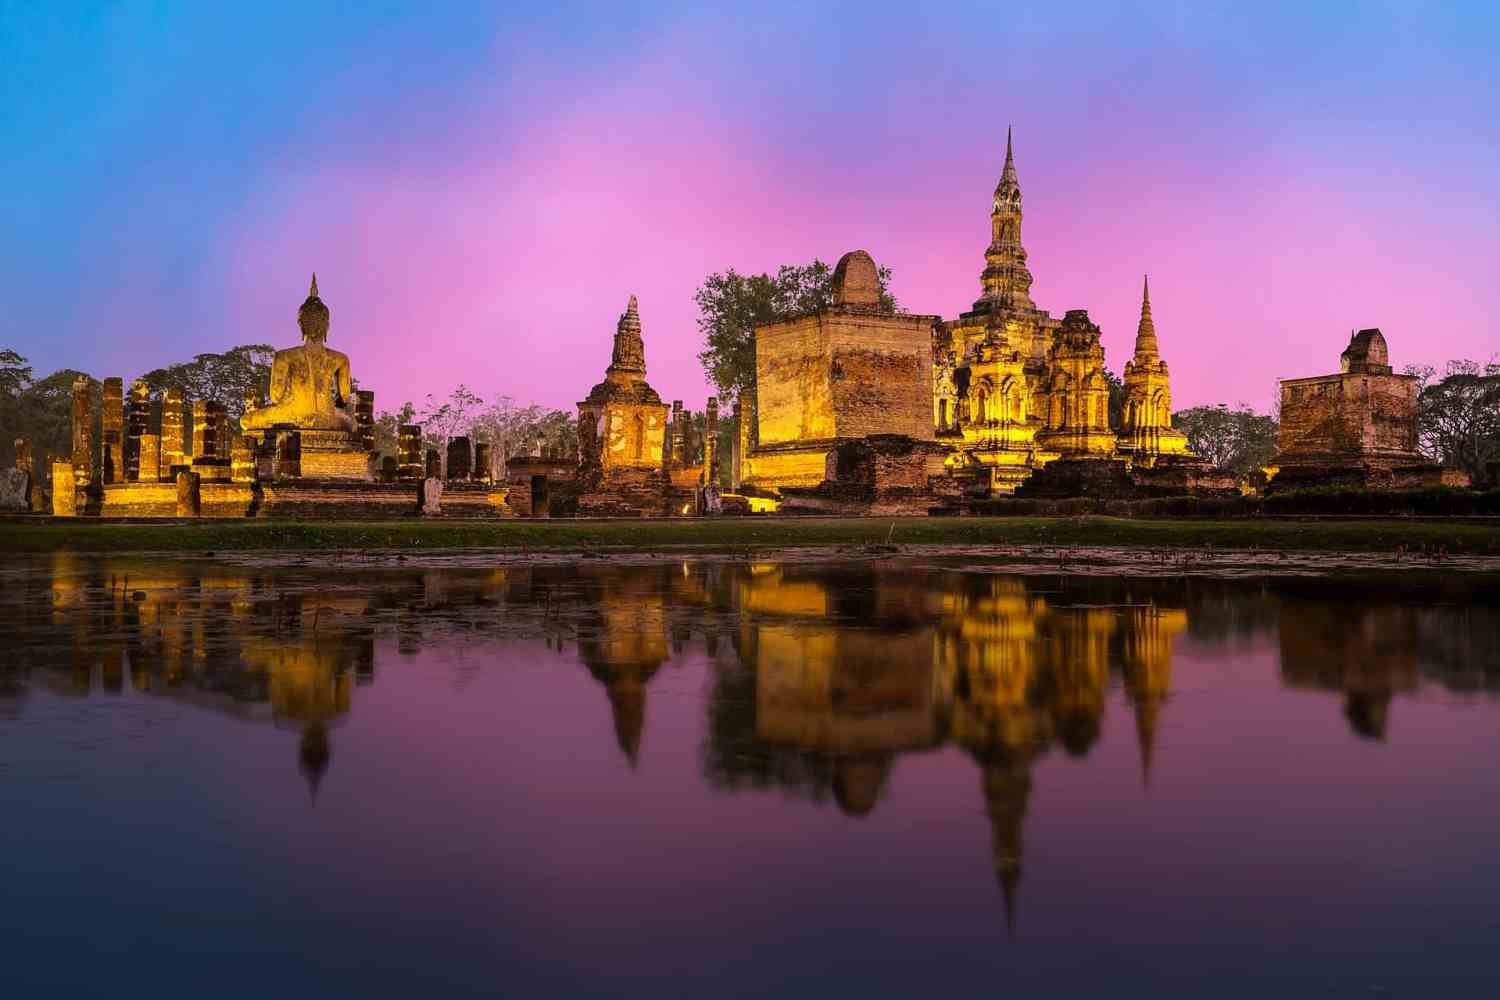 Cambodia- TOP 51 DESTINATIONS TO VISIT IN 2019 FOR INDIANS